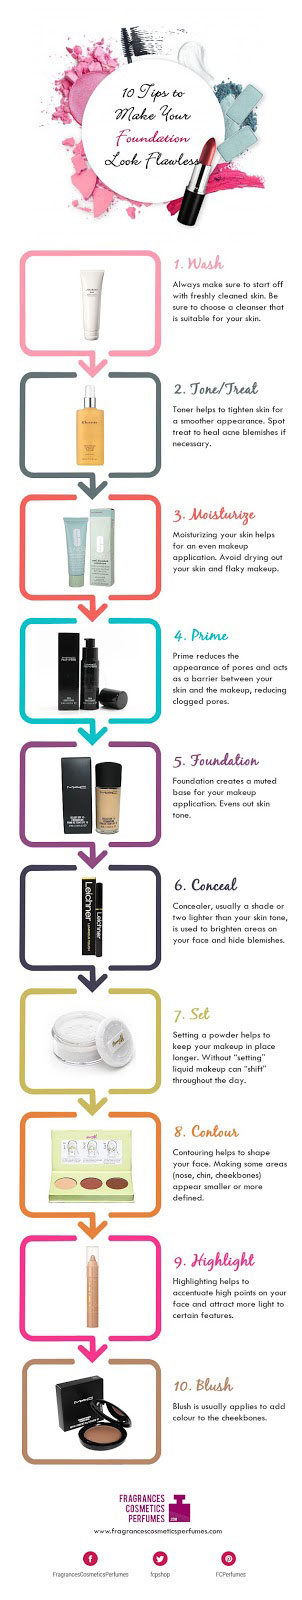 10 Tips to Make Your Foundation Look Flawless- Njkinny's Blog